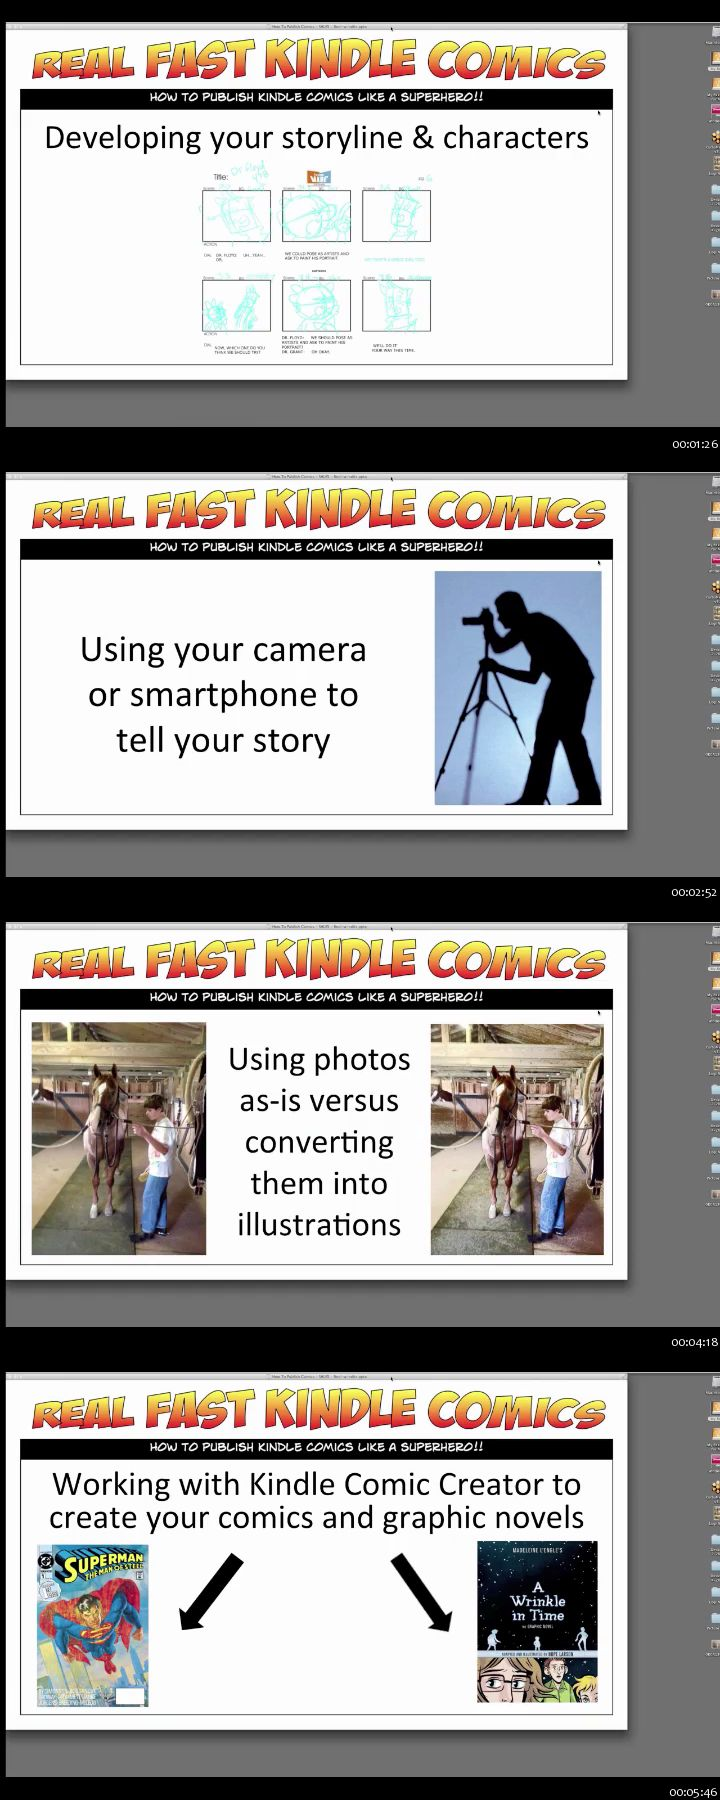 SkillFeed - How To Create and Publish Comics